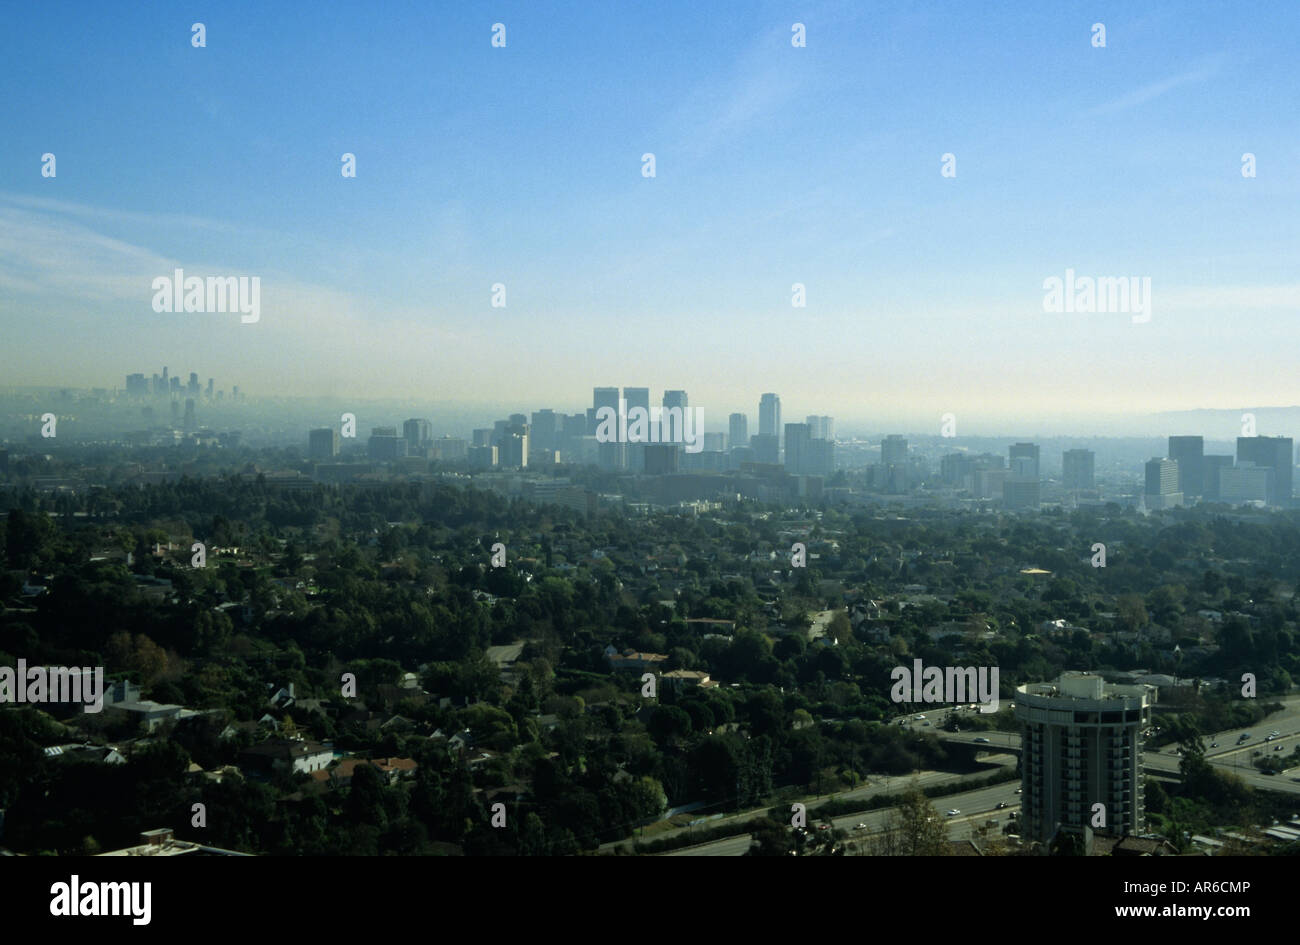 Los angeles - Stock Image